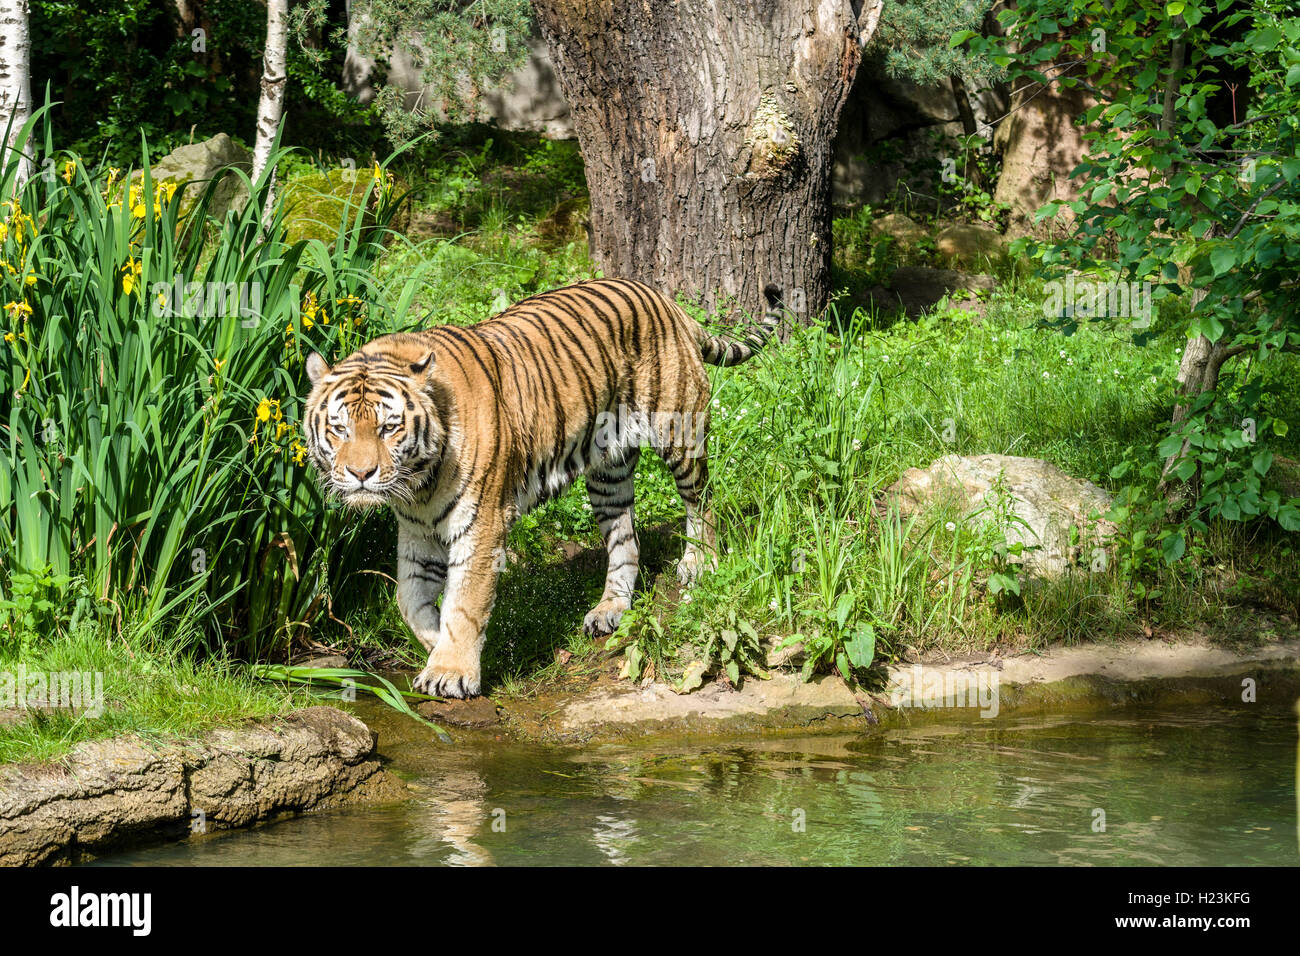 Amur Tiger (Panthera tigris altaica), walking along a waterhole, captive, Leipzig, Saxony, Germany - Stock Image